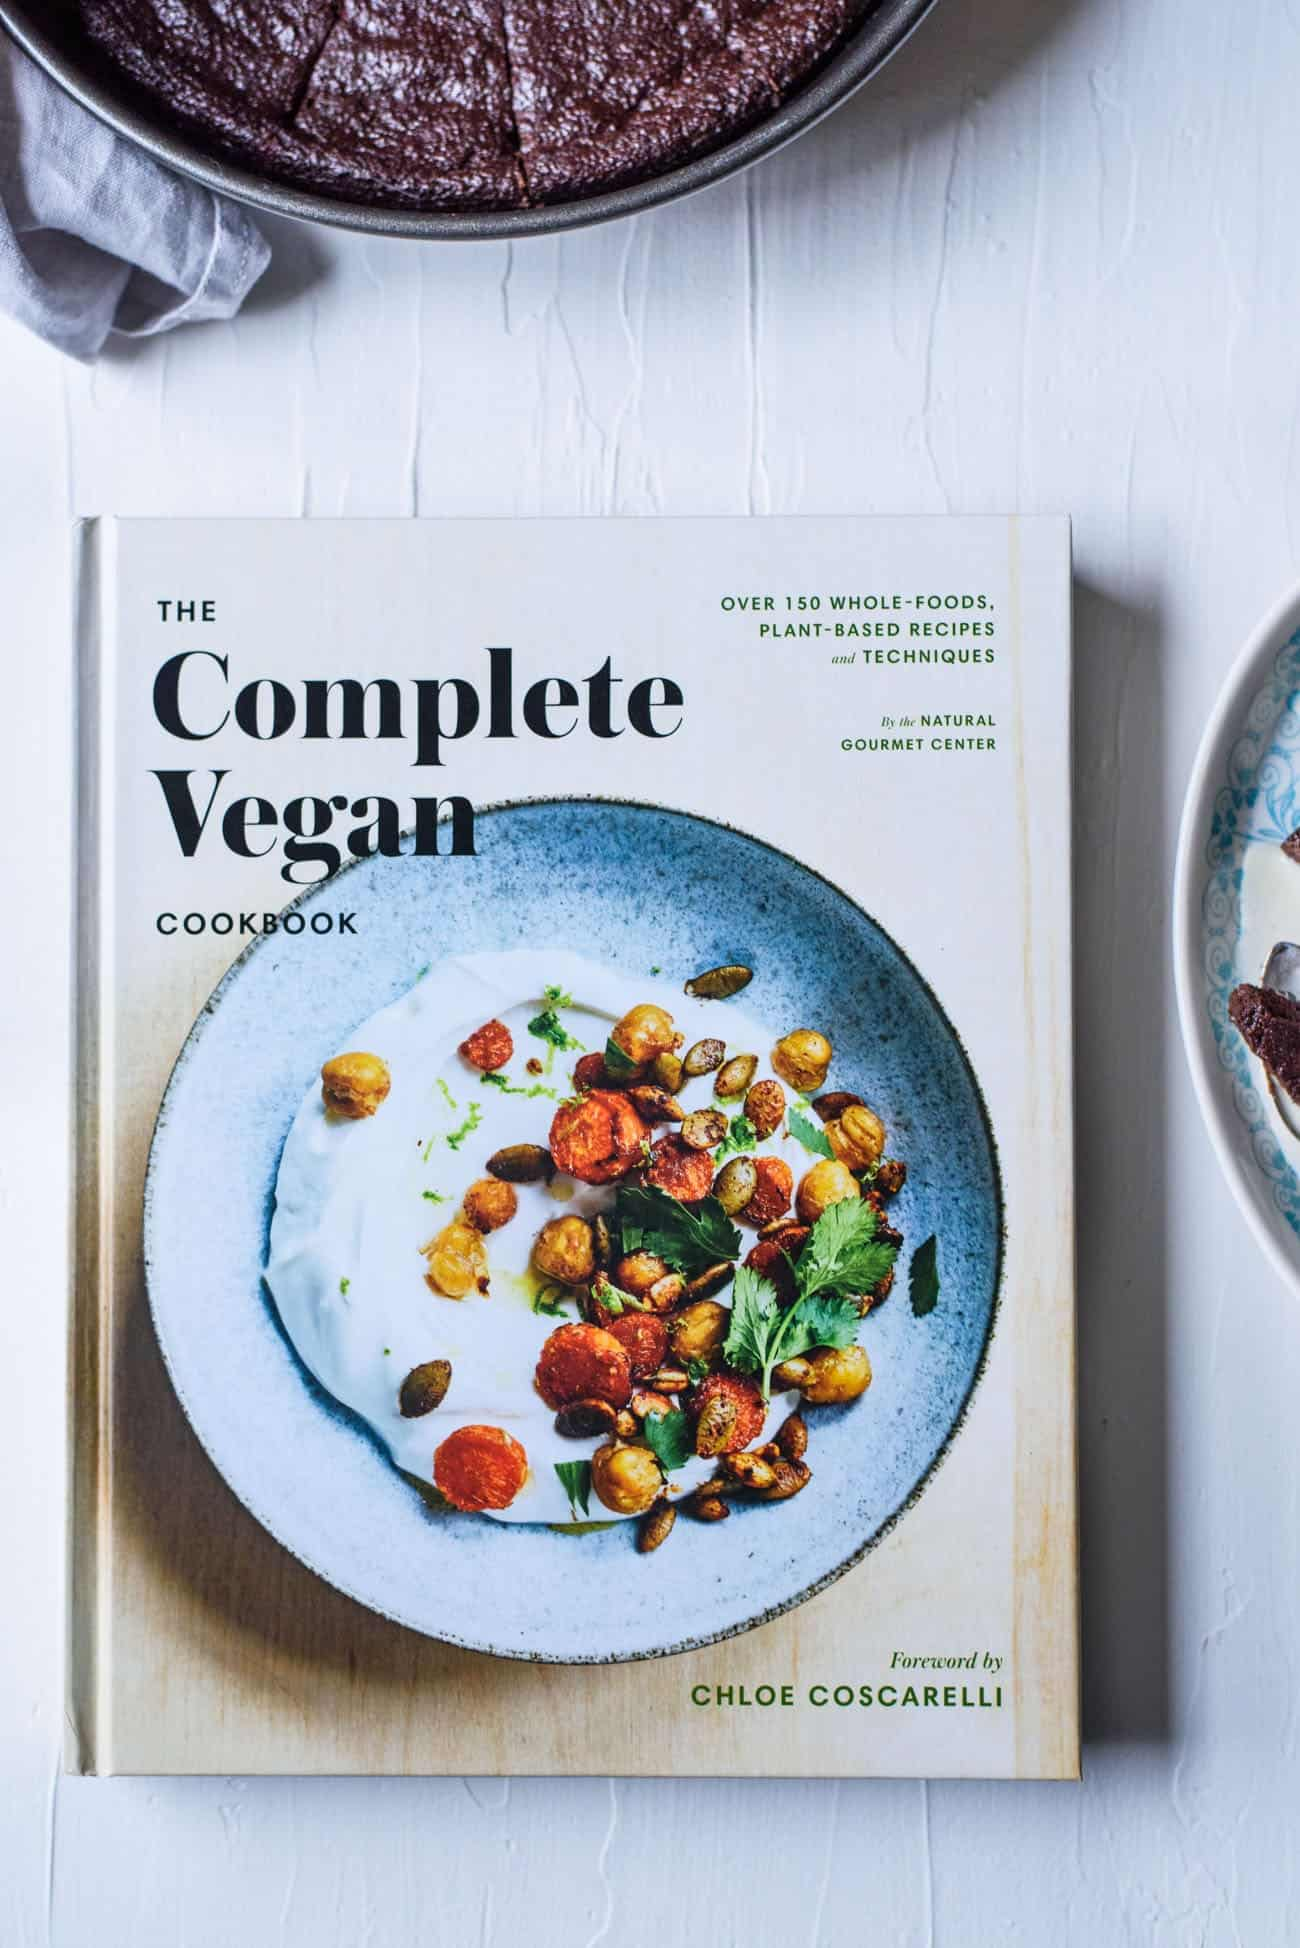 The Complete Vegan Cookbook on a white table